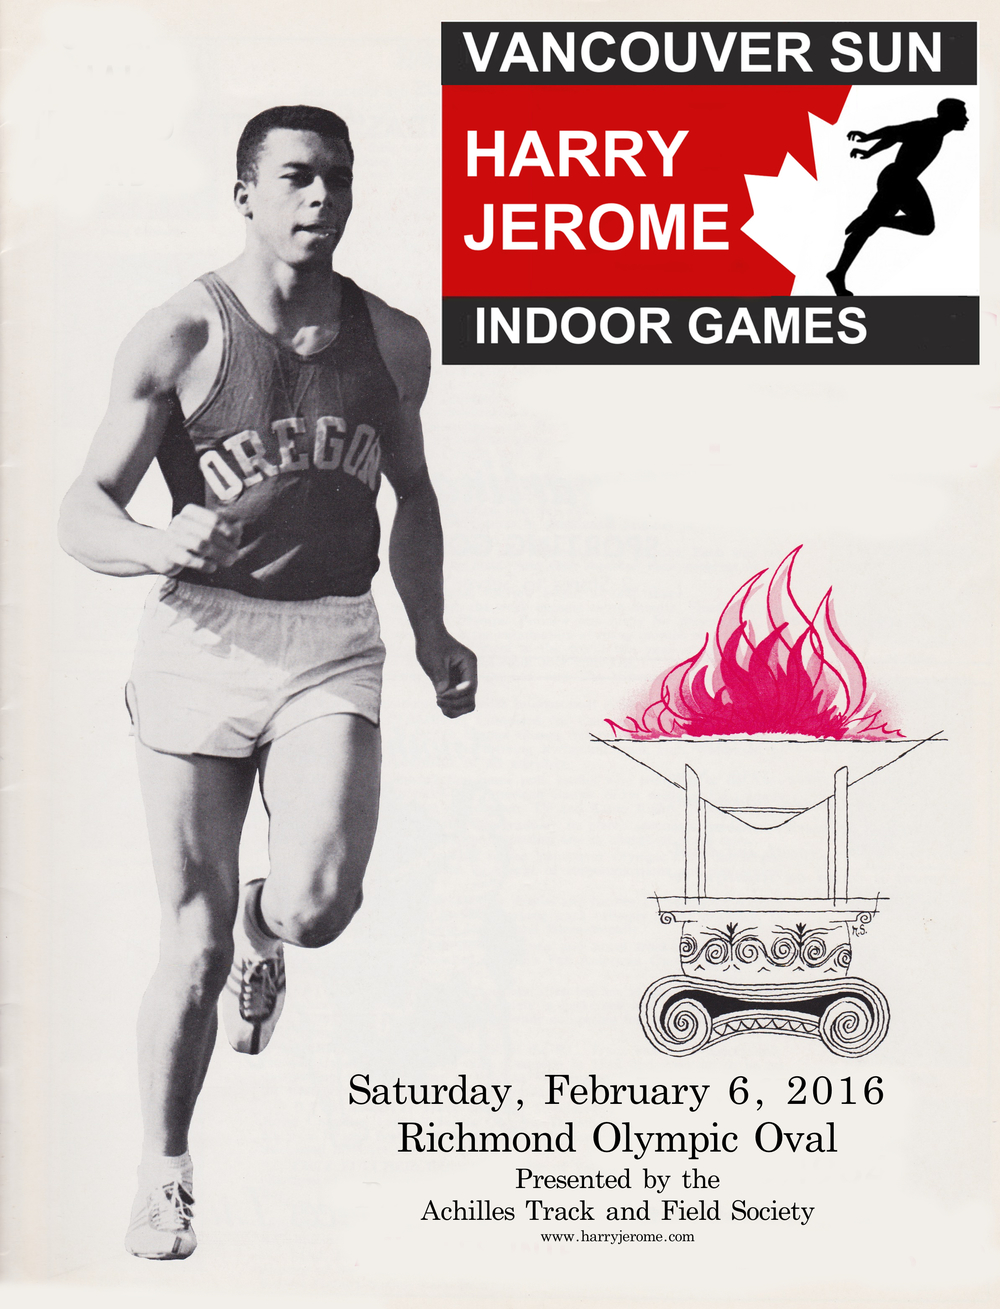 The upcoming British Columbia indoor track season will start with the 6th Annual Vancouver Sun Harry Jerome Indoor Games on Saturday, February 6th at the Richmond Olympic Oval.  Last year over 400 athletes of all ages participated in this competition on the 200m indoor track, which is a legacy of the 2010 Winter Olympic Games.